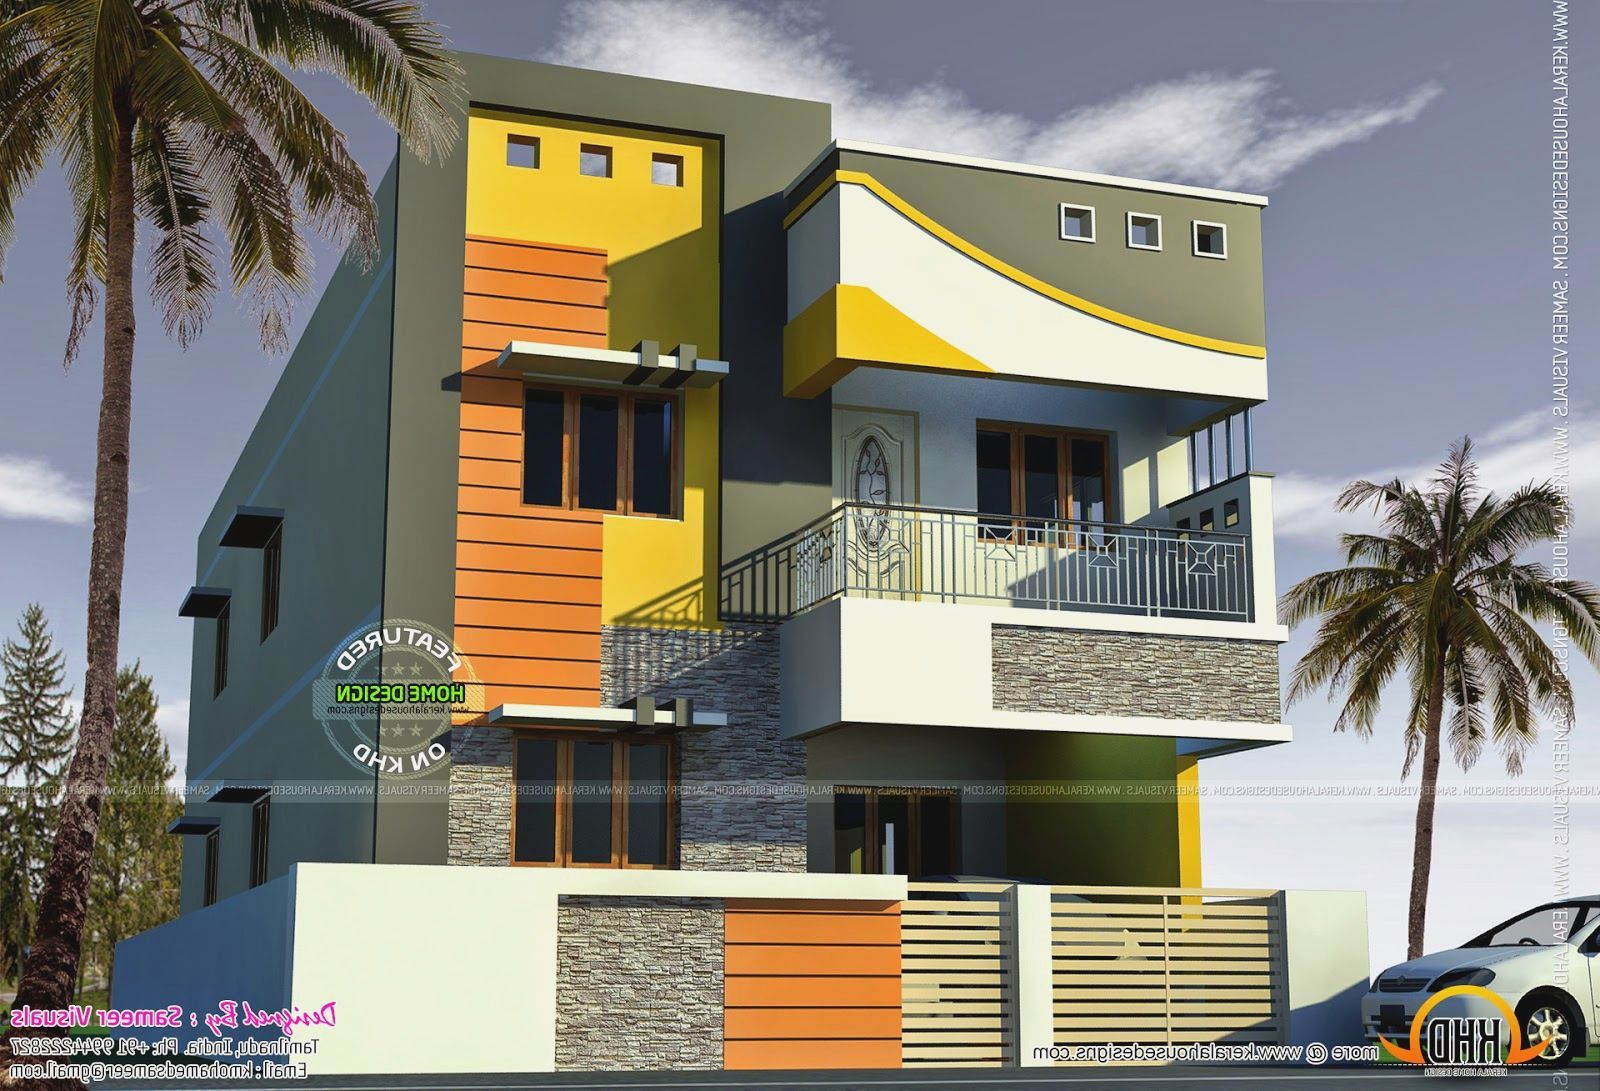 House model pictures in chennai madras